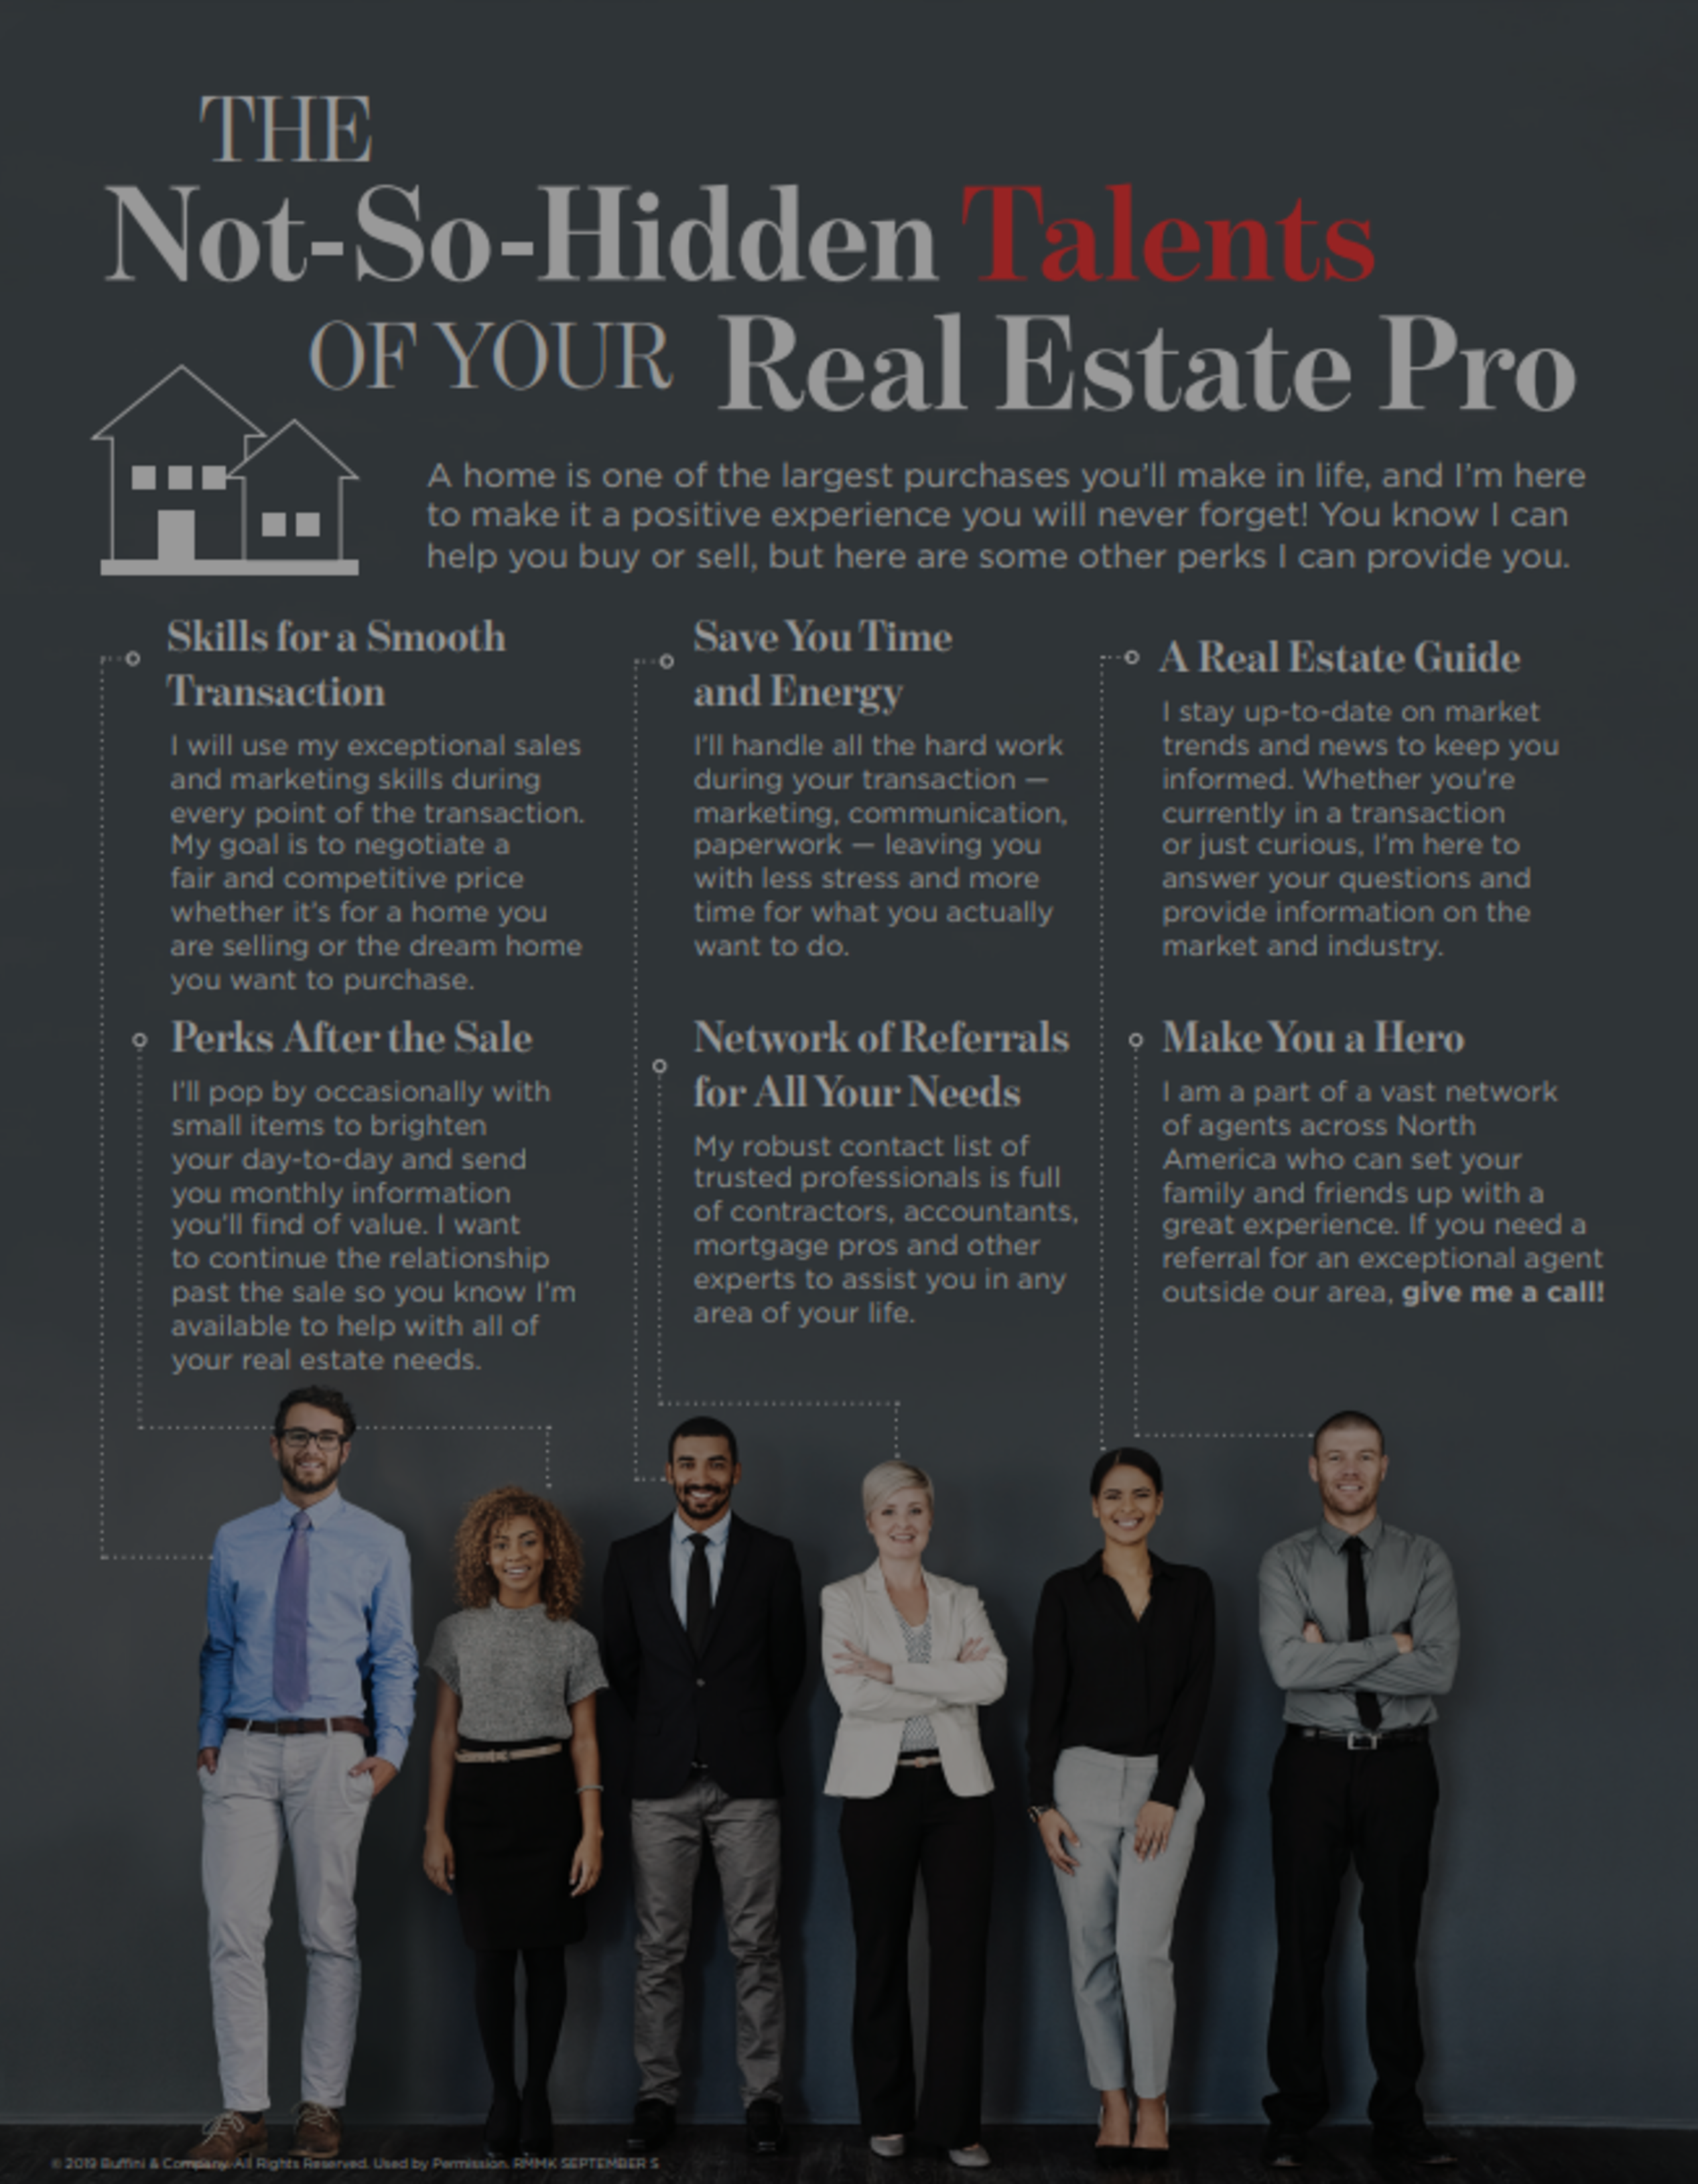 The Not-So-Hidden Talents of Your Real Estate Pro